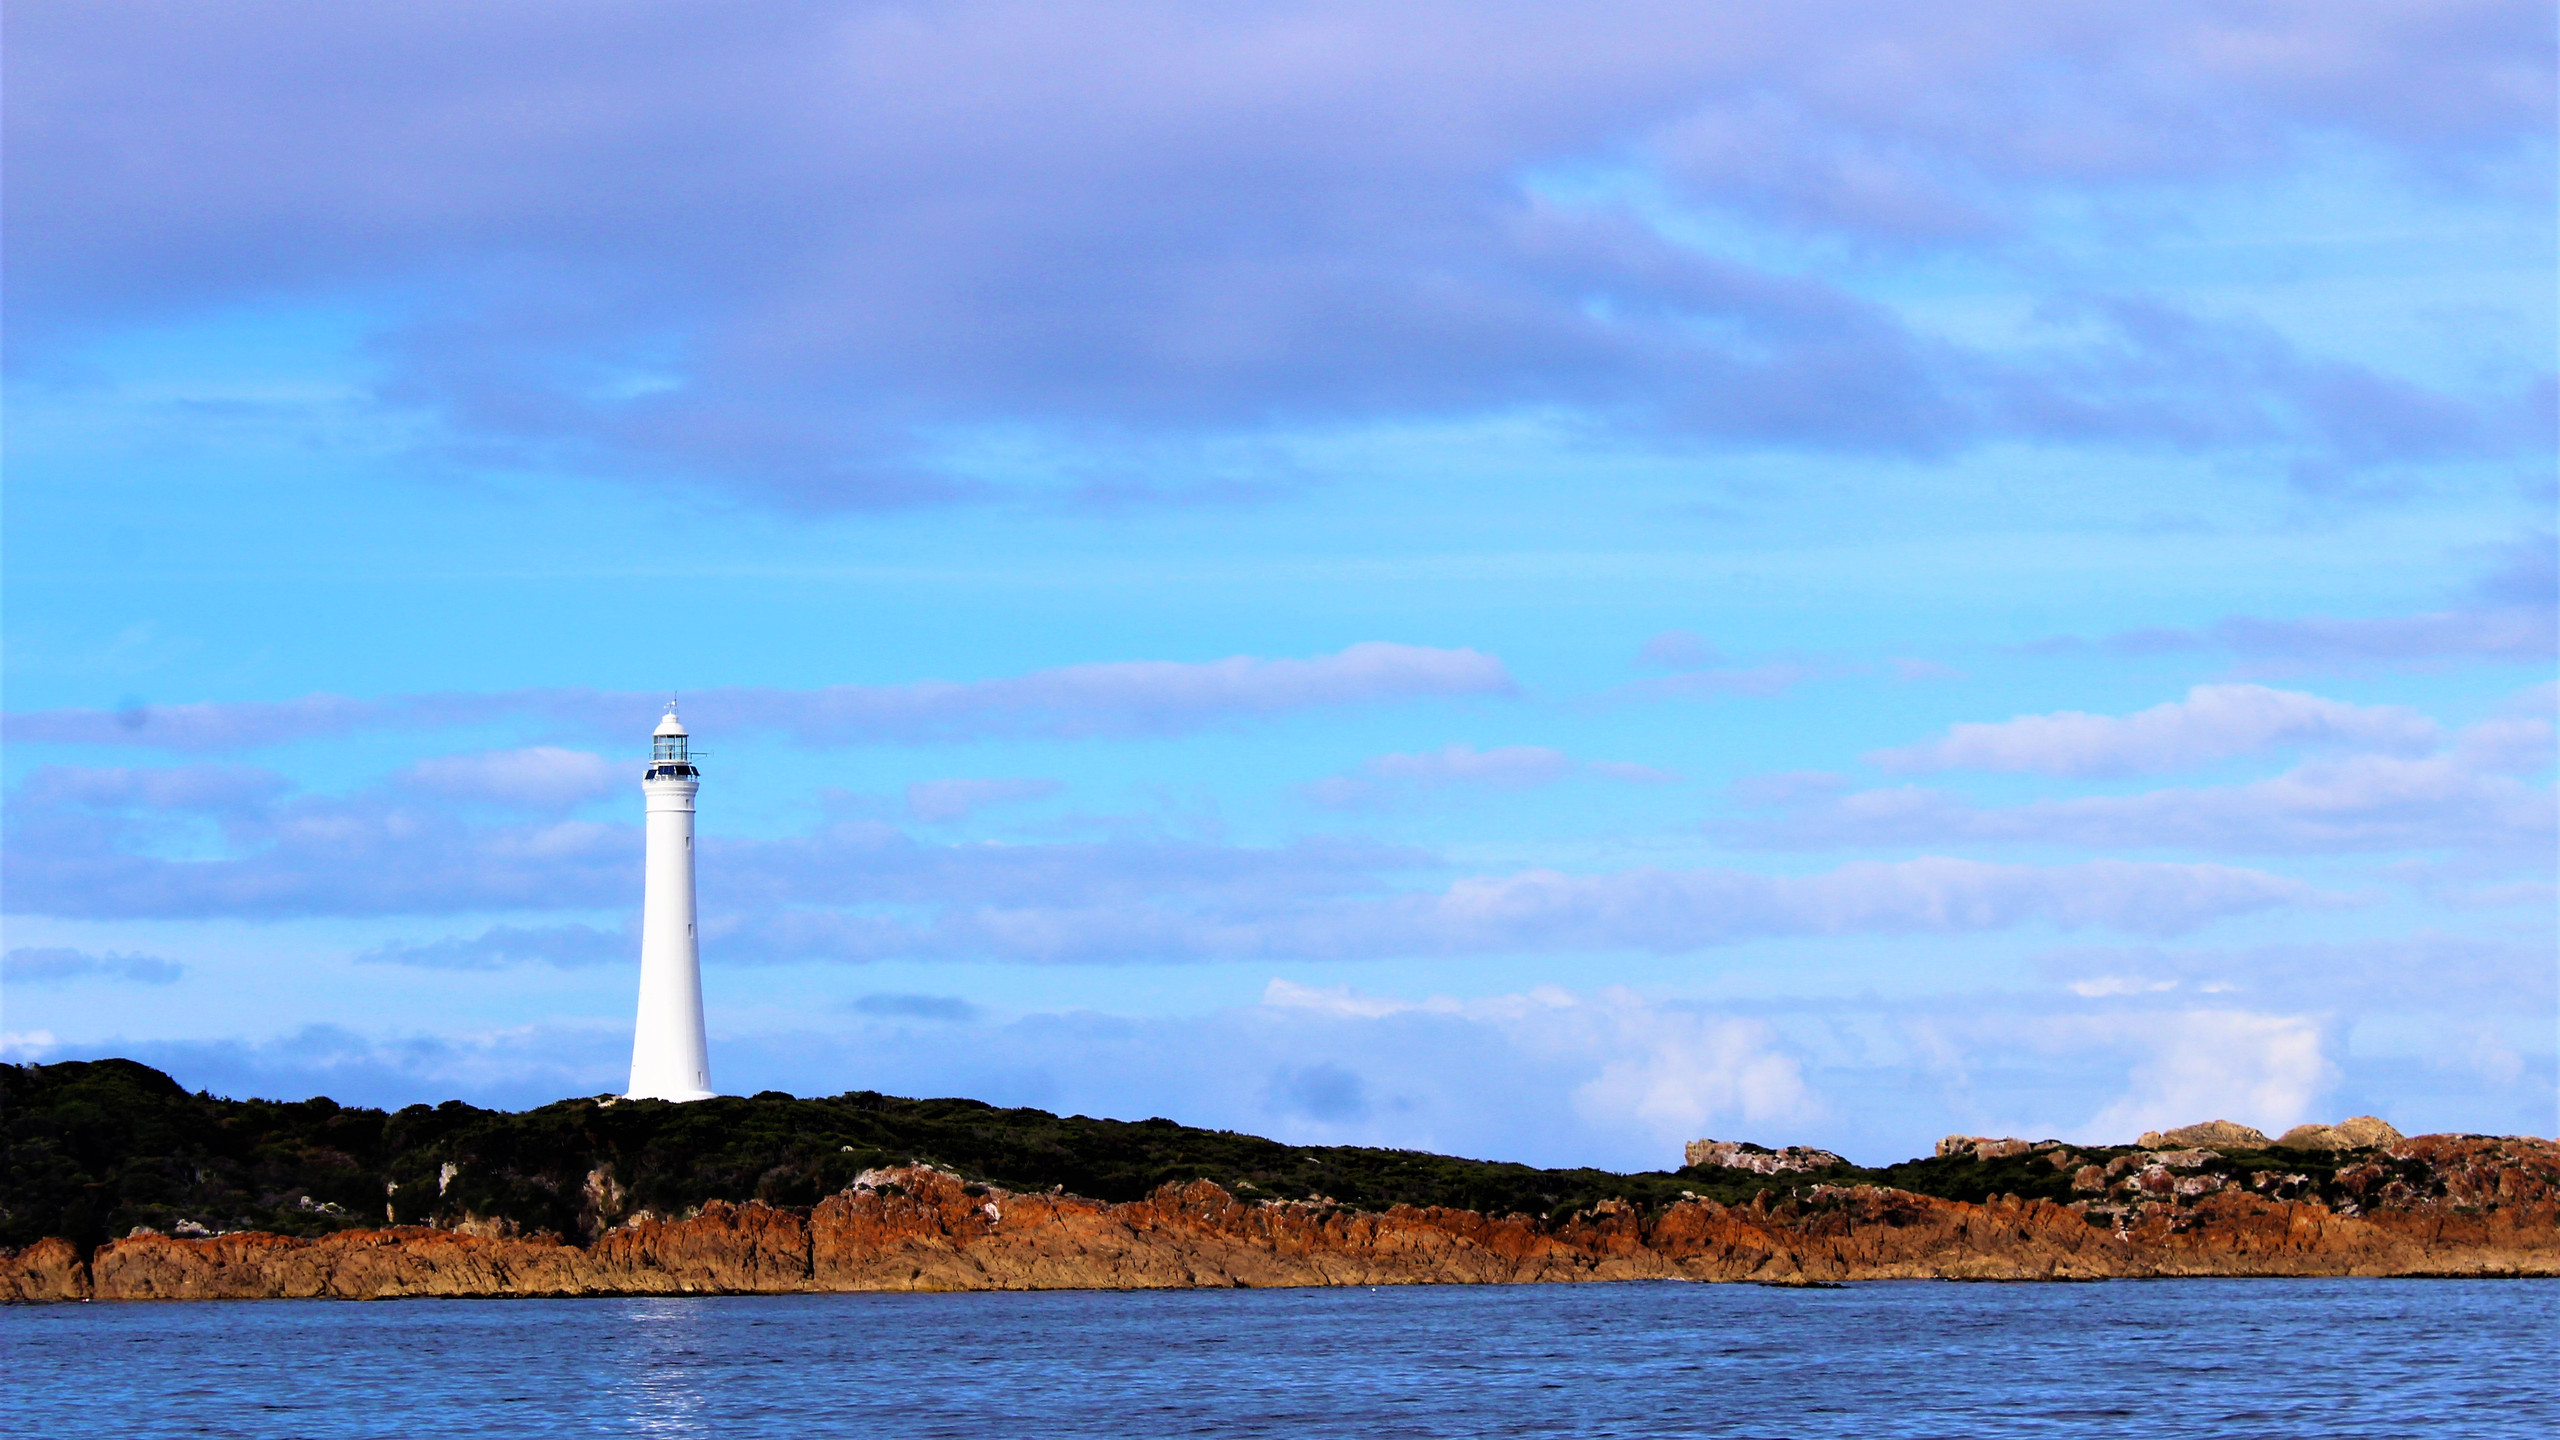 Tallest Tasmanian Lighhouse